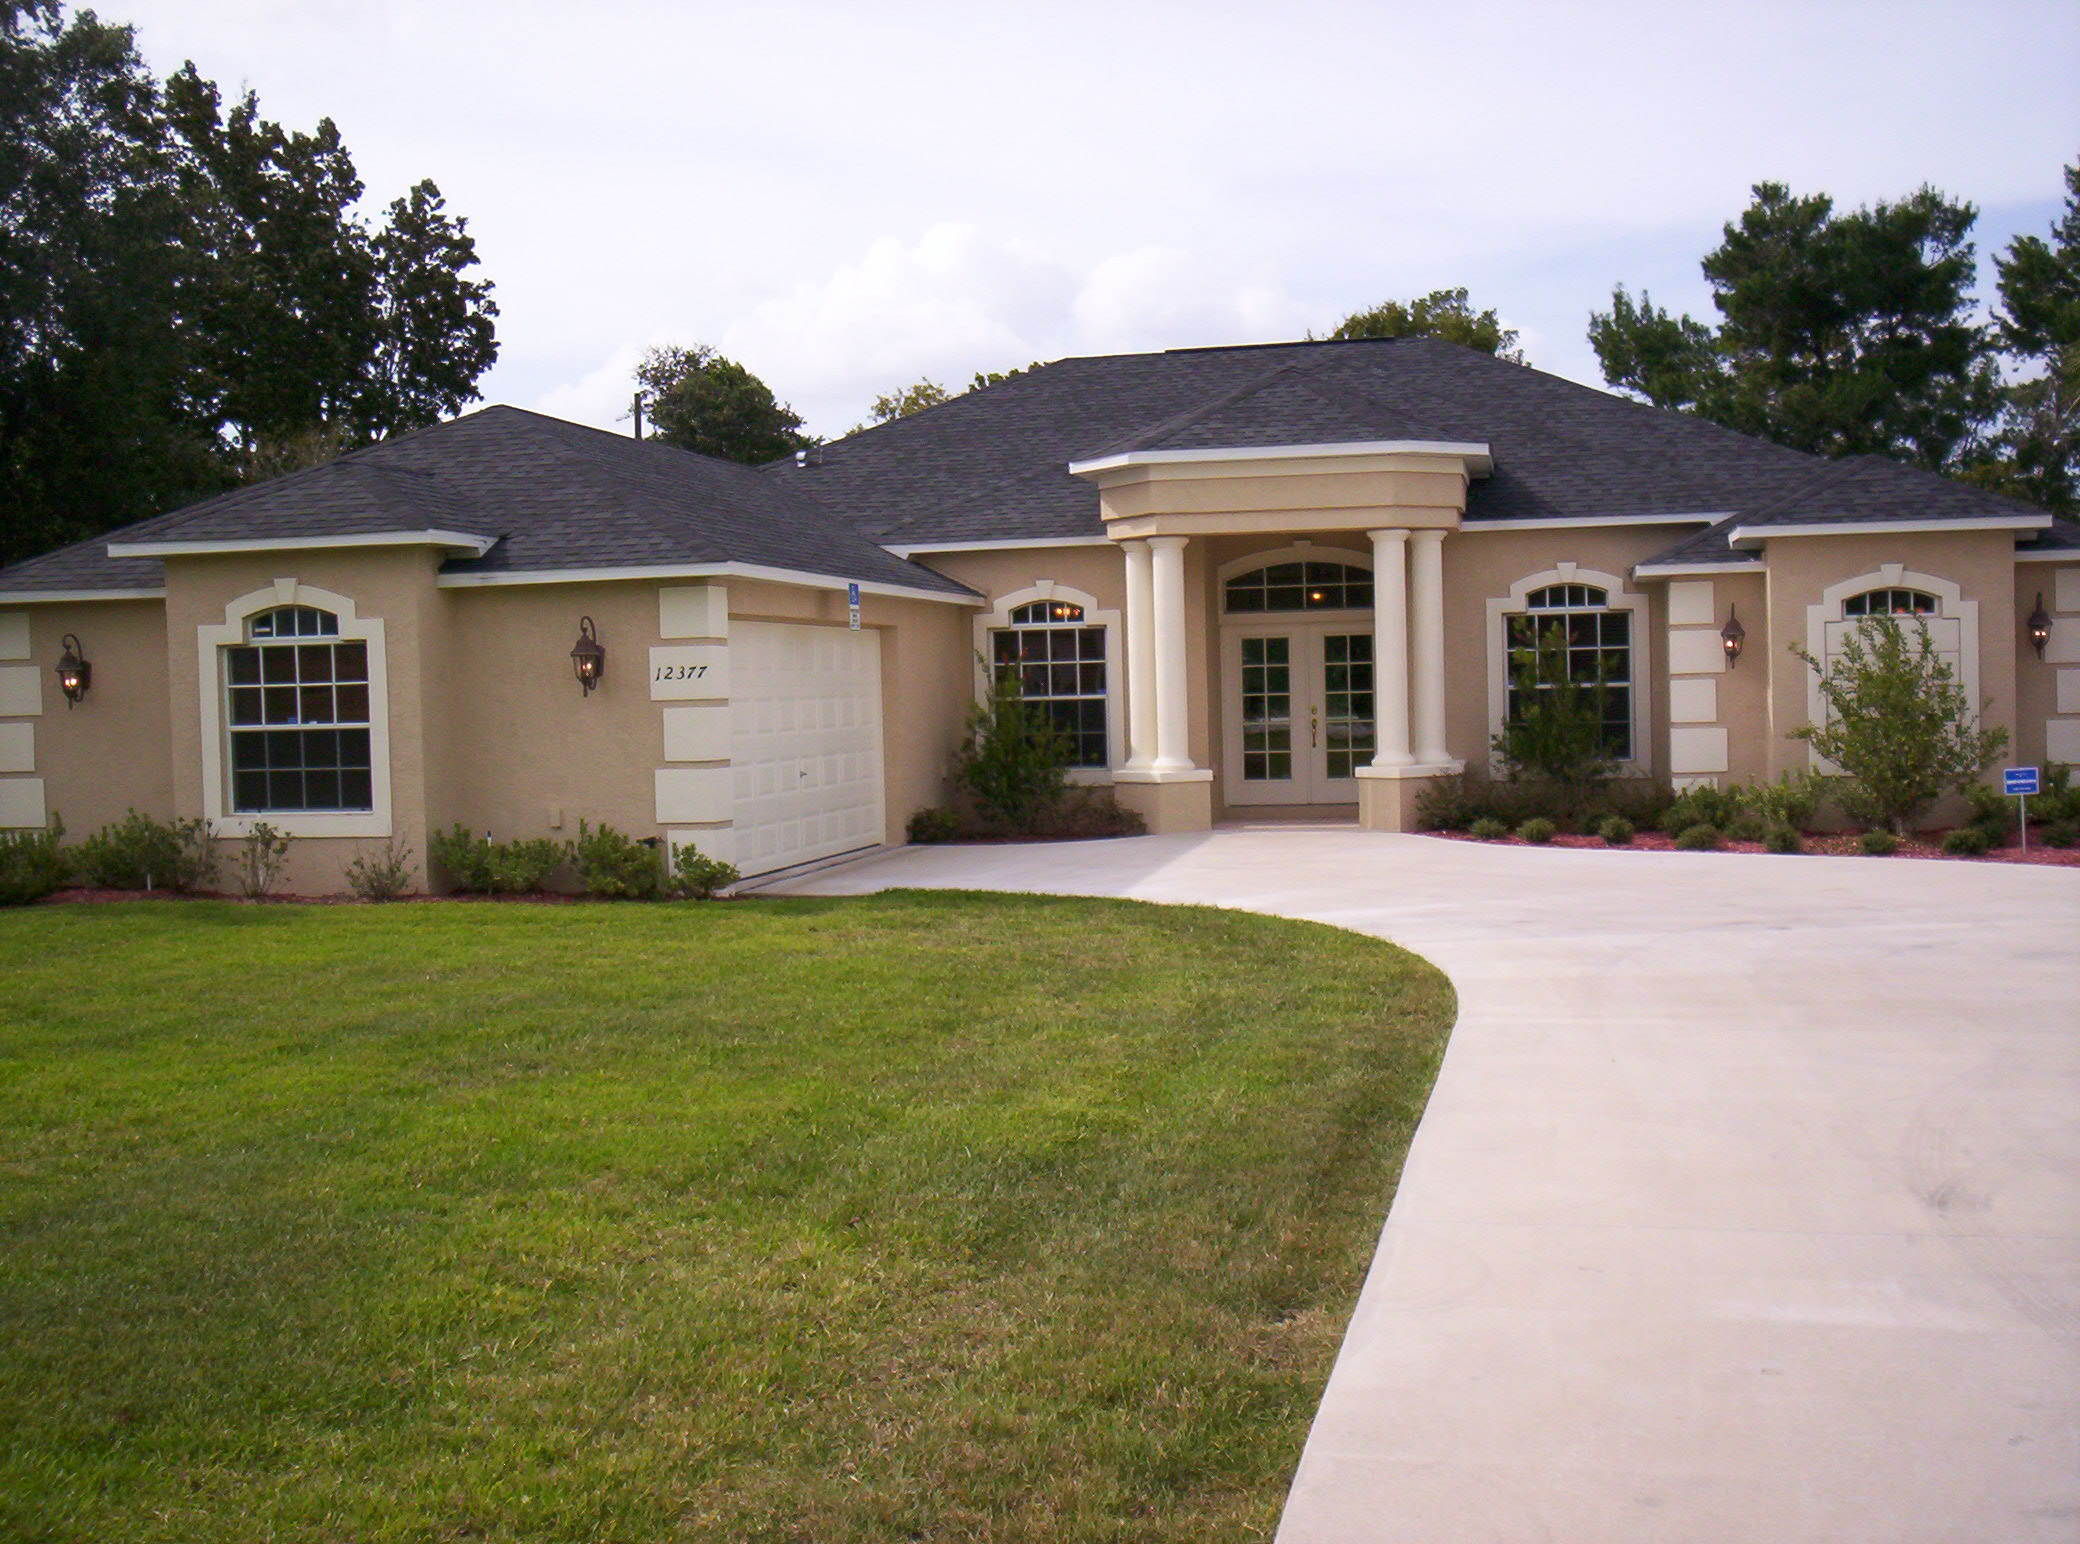 Park model homes ocala fl